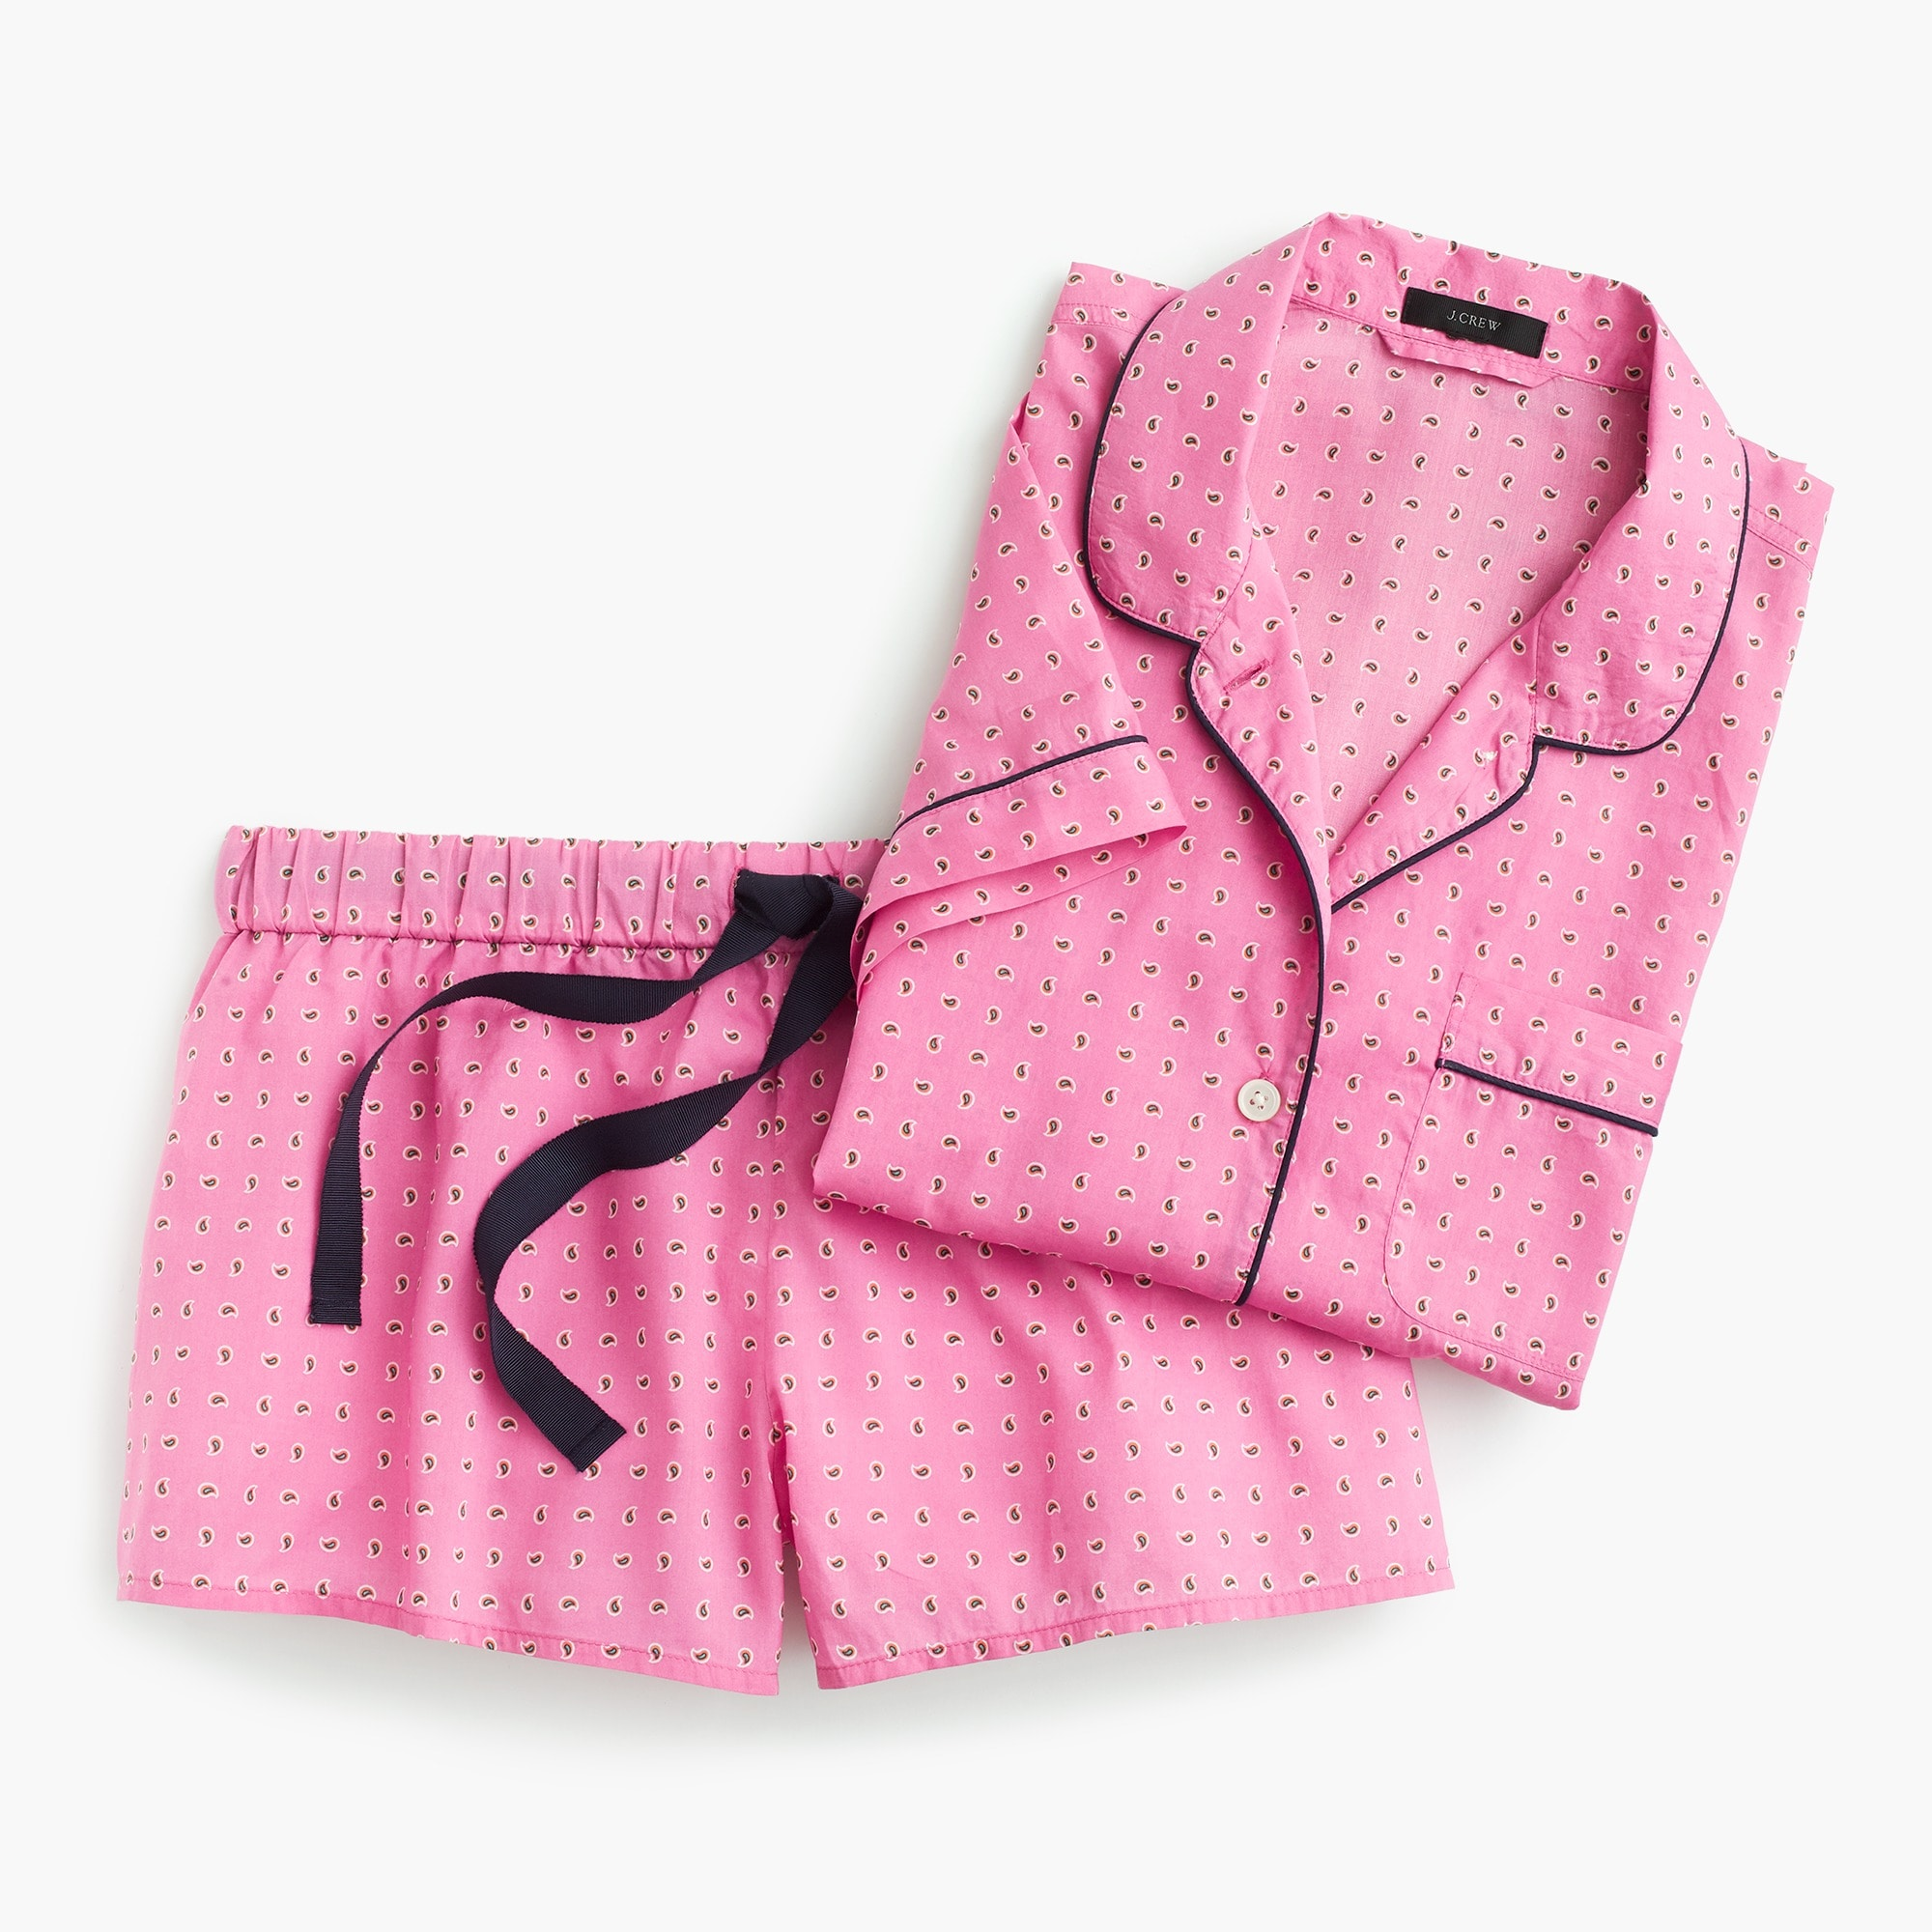 Pajama set in pink foulard